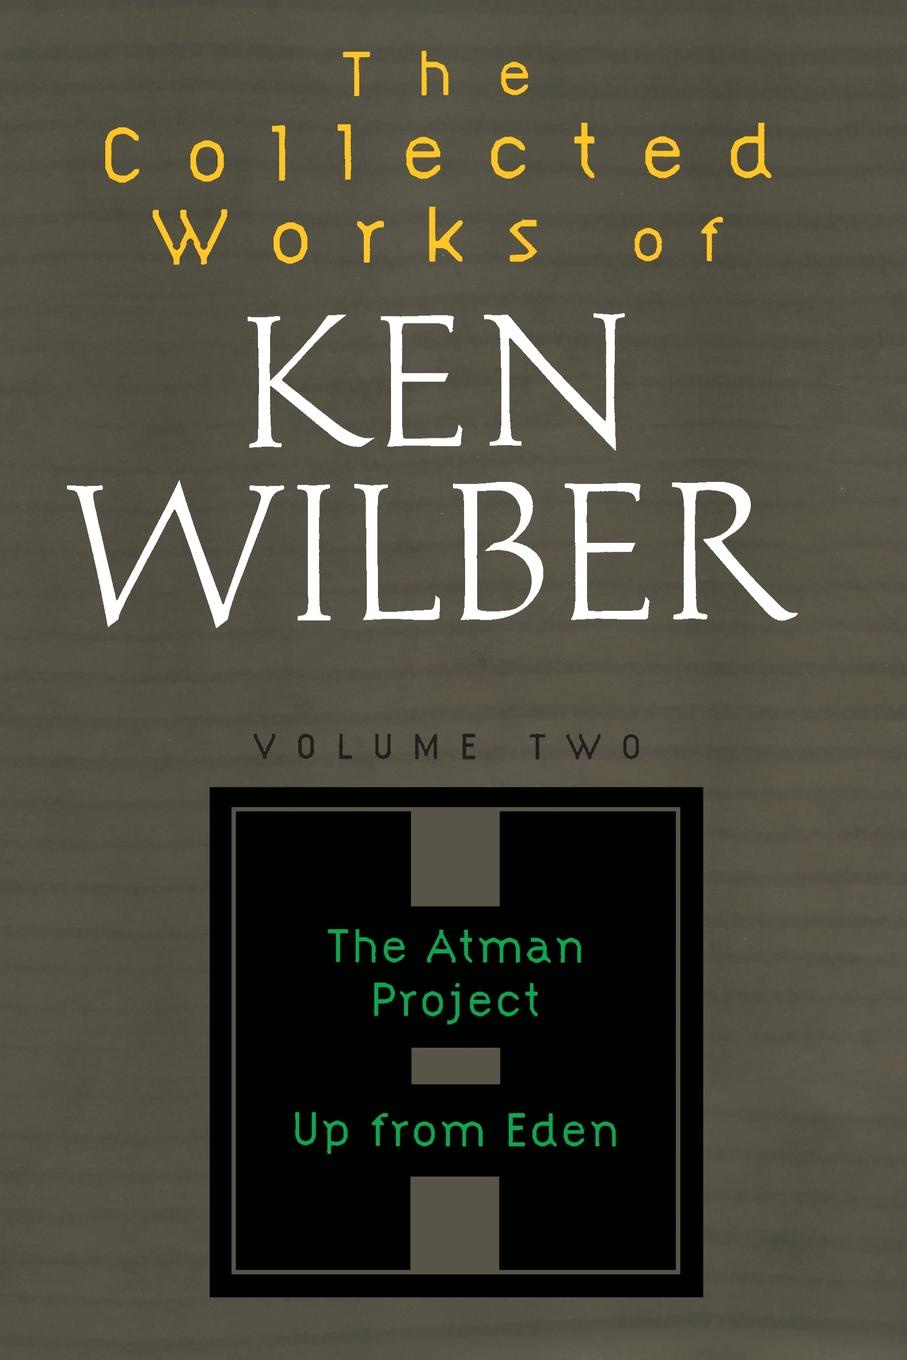 Ken Wilber Collected Works of Wilber, Volume 2